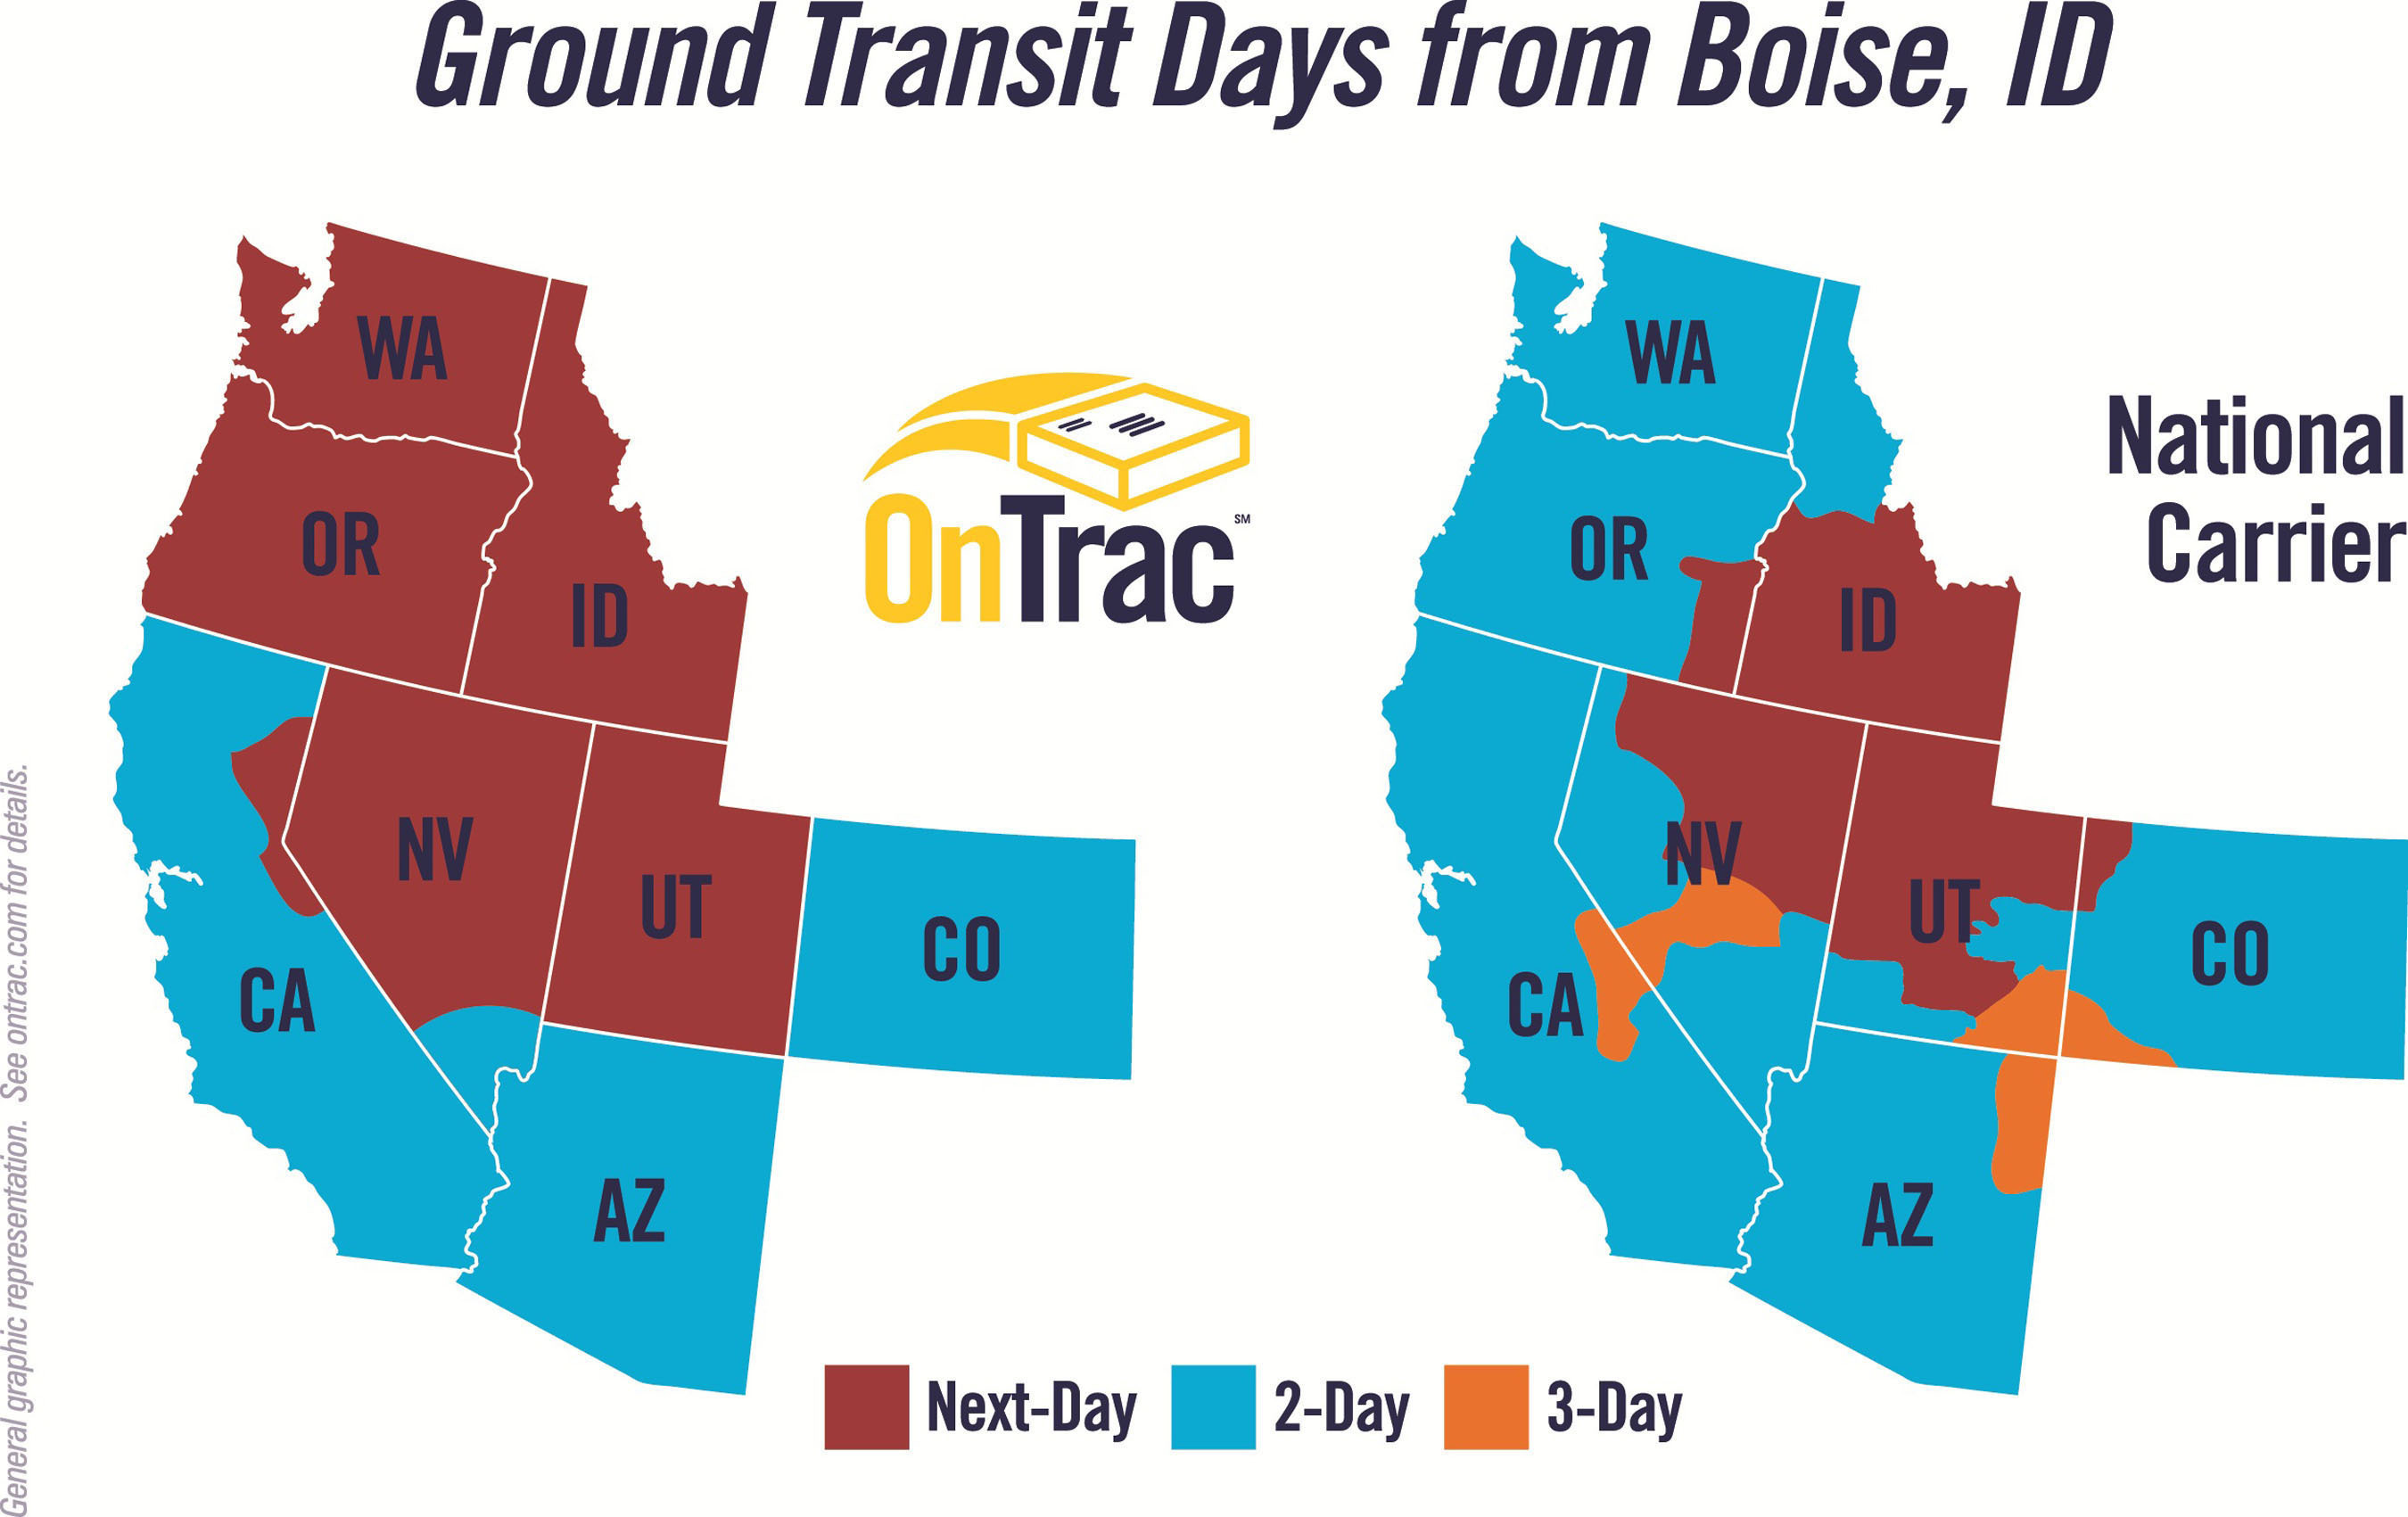 OnTrac offers faster shipping from Idaho gets to more places next day than the national carriers.  ...